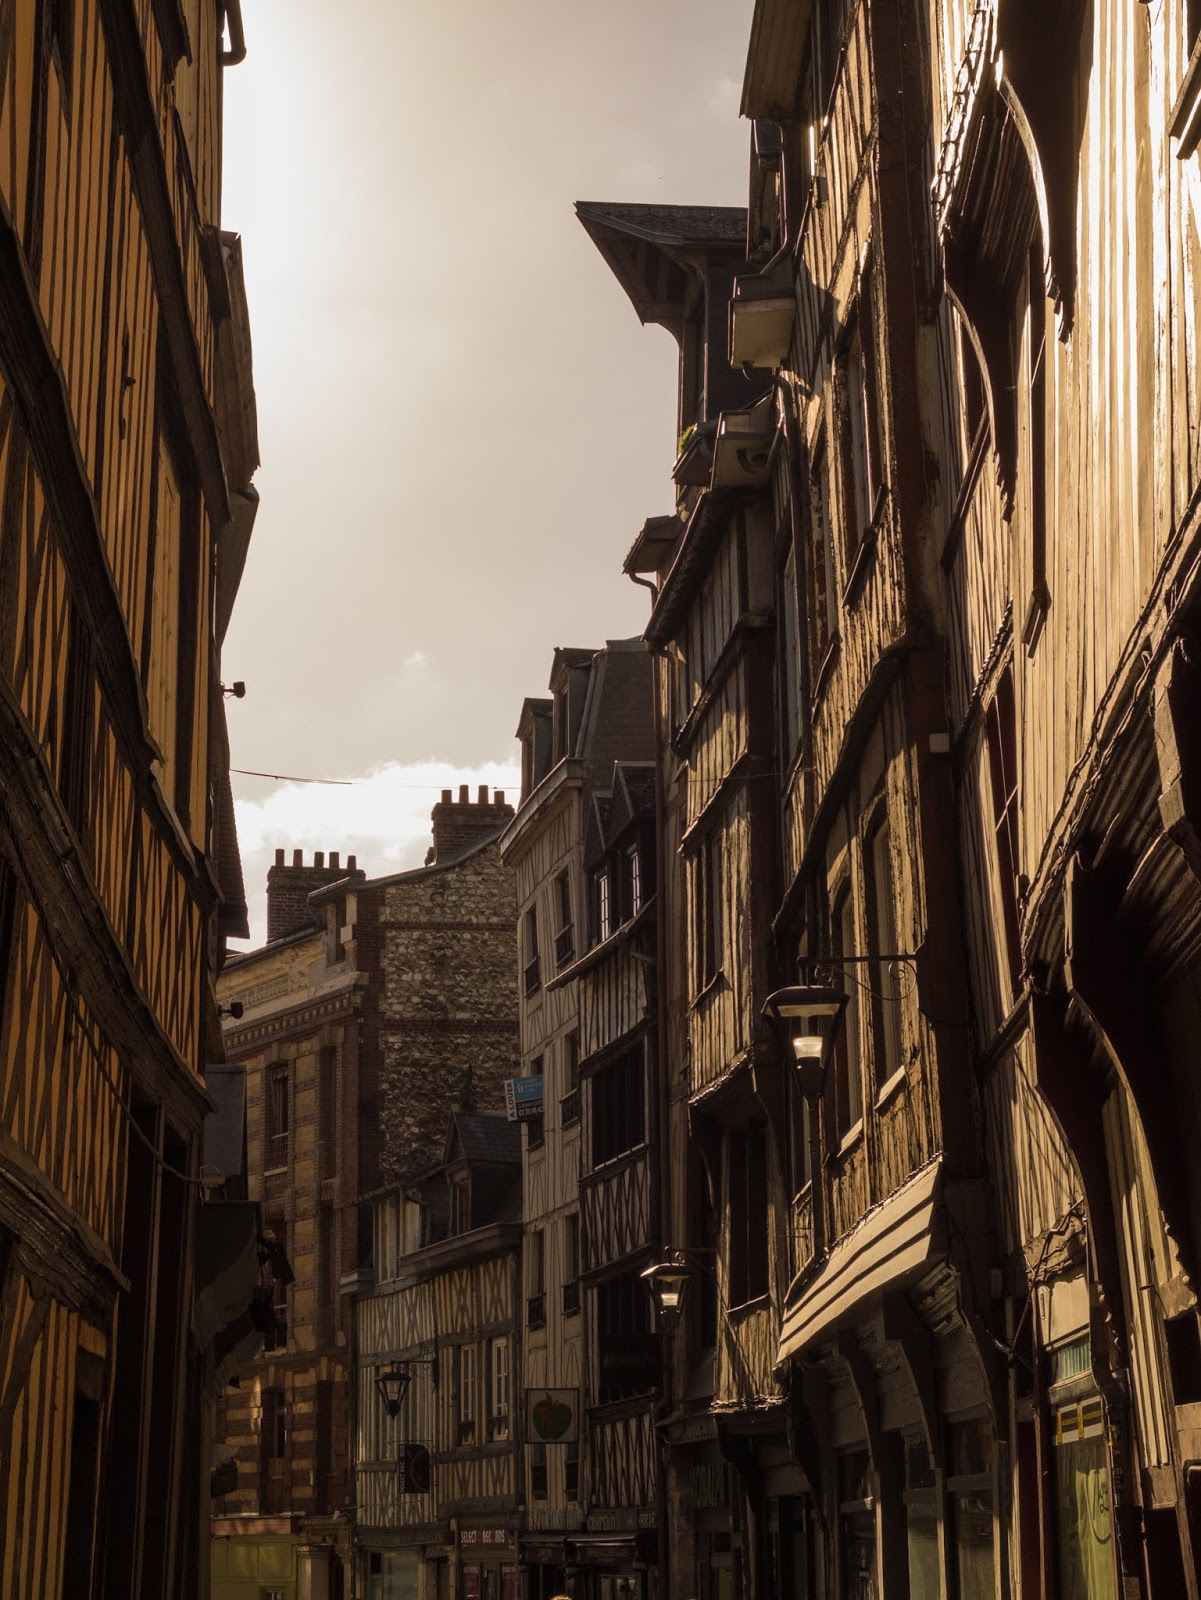 Sunlight on buildings on the Vicomte Street in Rouen, France.